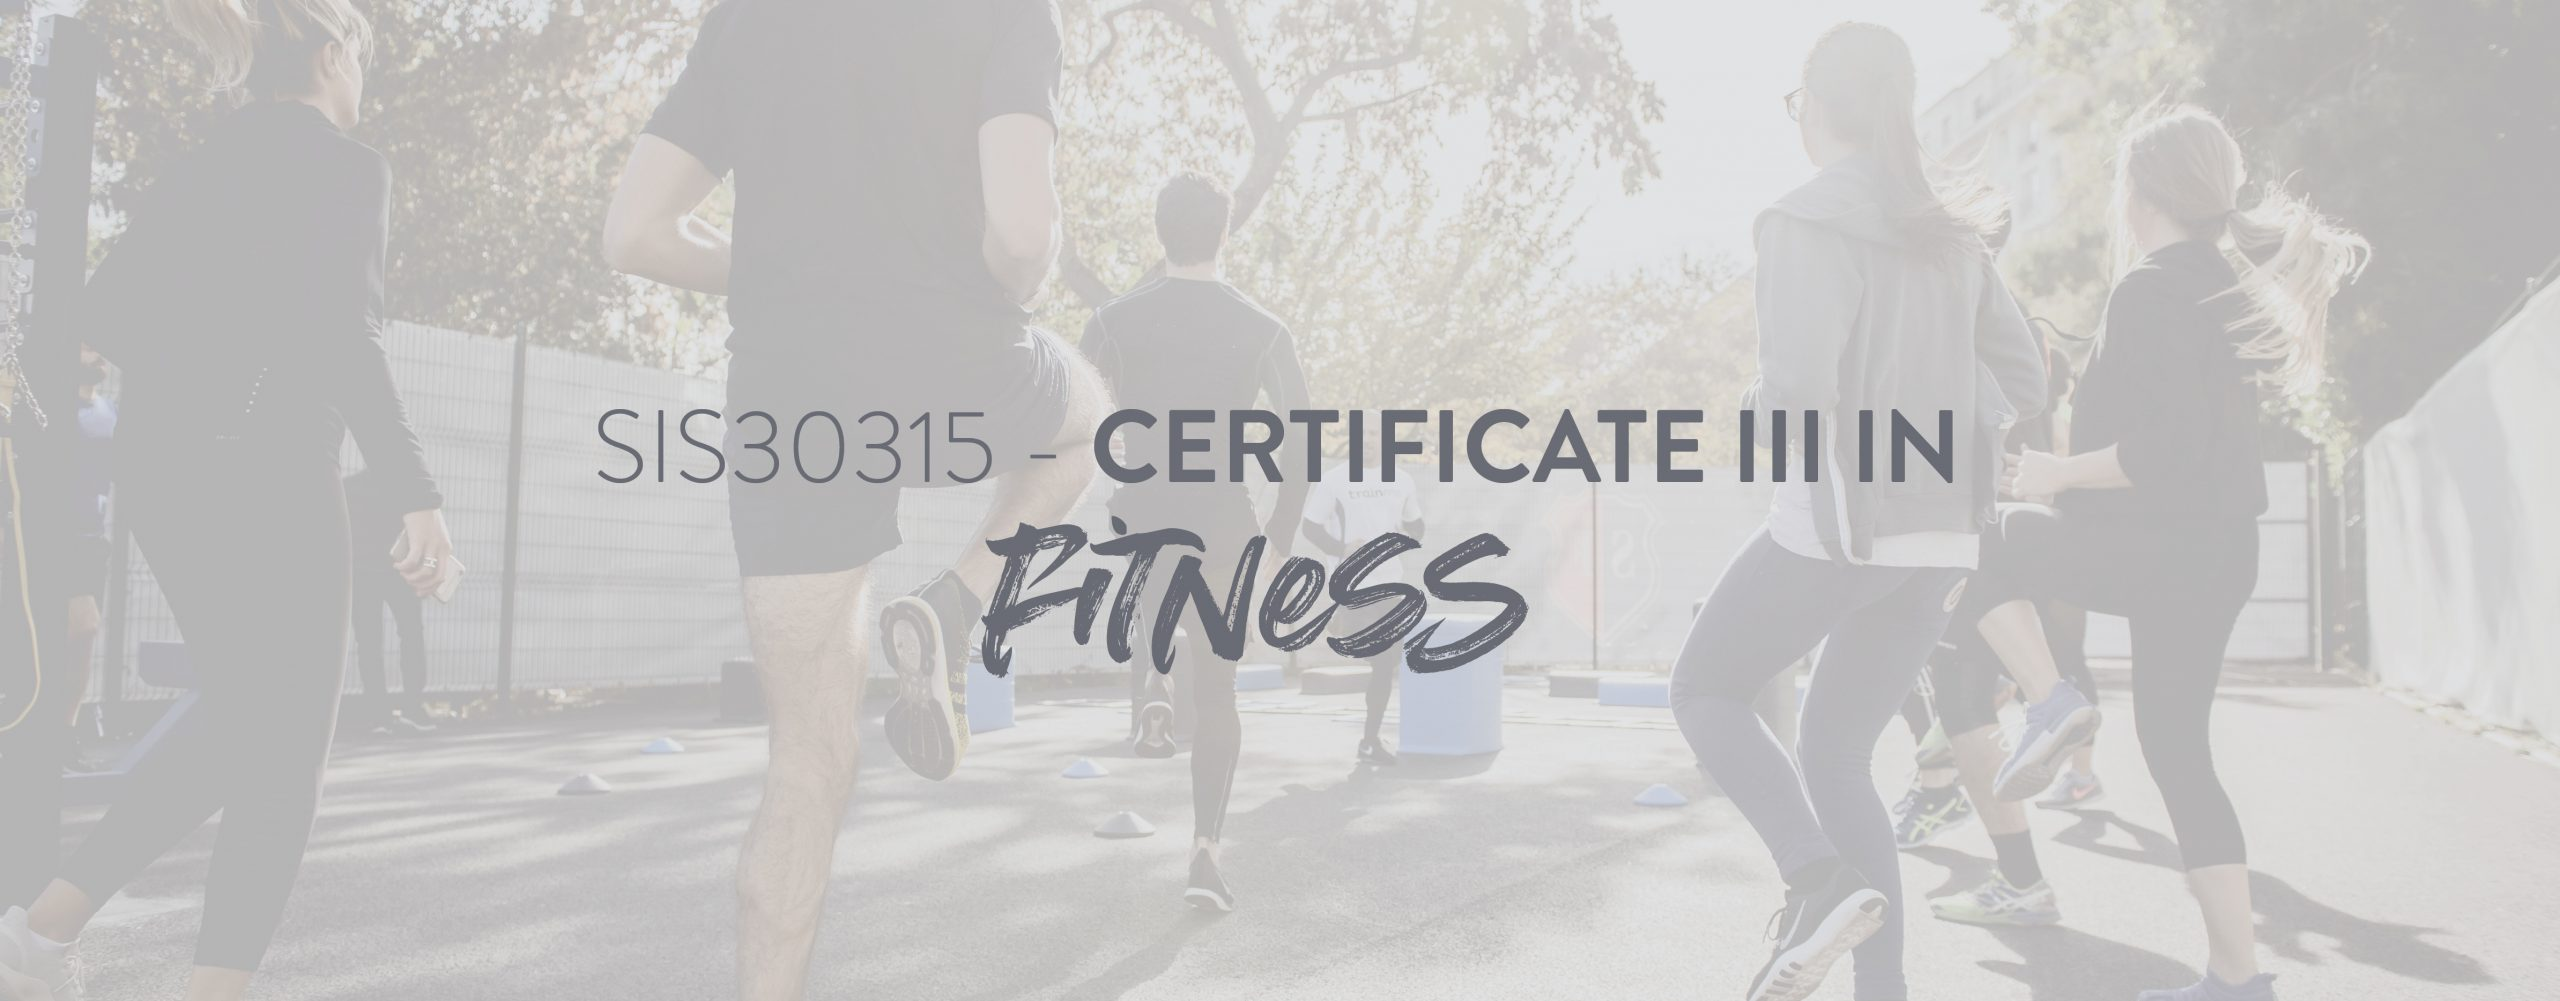 Group Fitness Trainer qualified with the SIS30315 - Certificate III In Fitness taking clients through an outdoor training session.